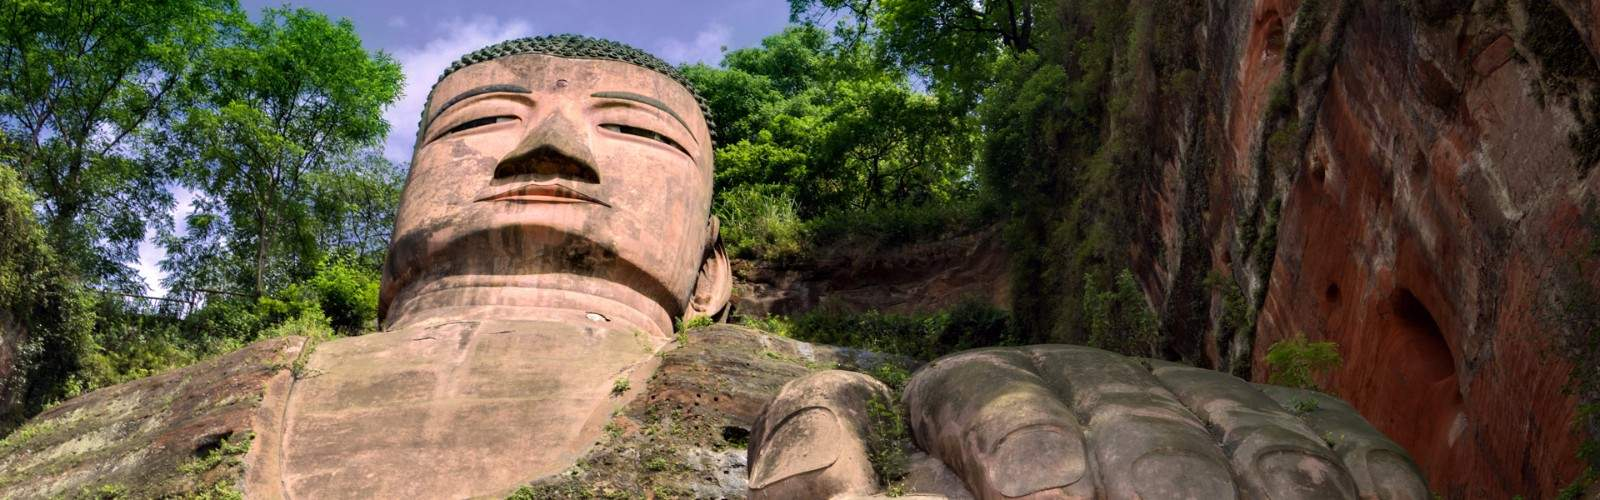 Grand Buddha of Leshan